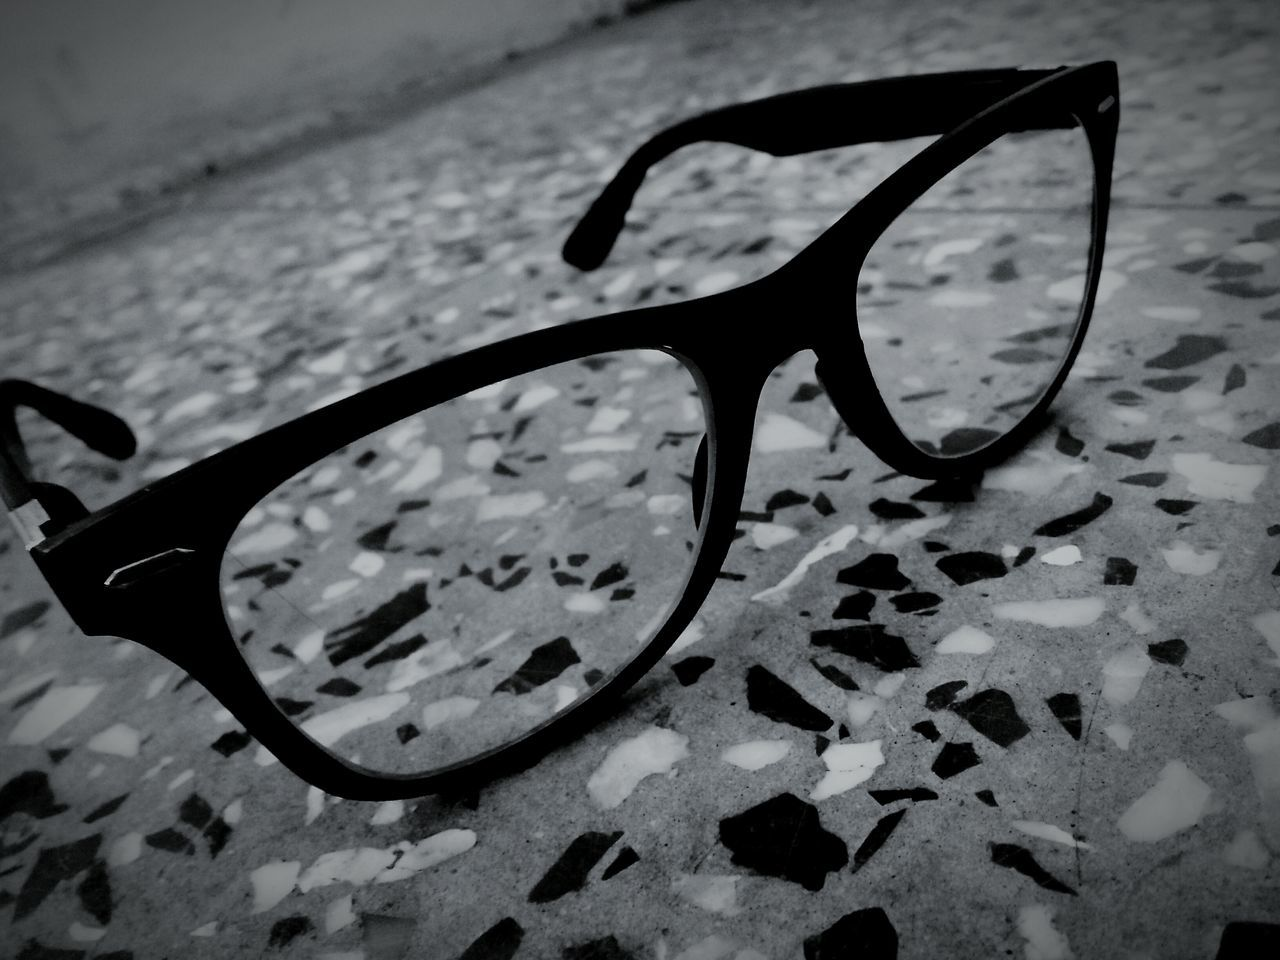 sunglasses, eyeglasses, eyewear, vision, eyesight, glasses, no people, high angle view, cool, close-up, day, outdoors, reading glasses